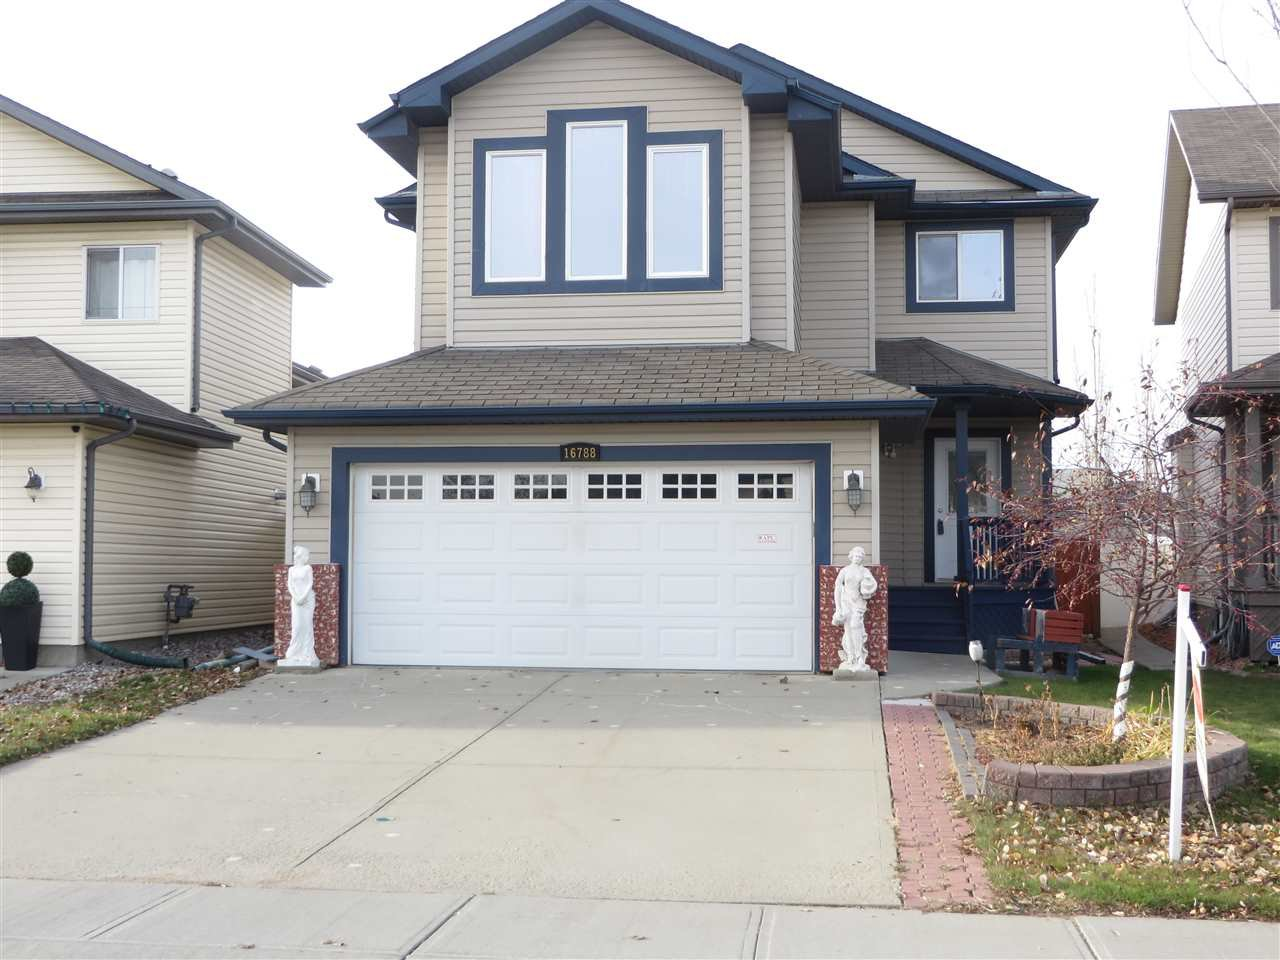 Main Photo: 16788 117 Street in Edmonton: Zone 27 House for sale : MLS®# E4178735